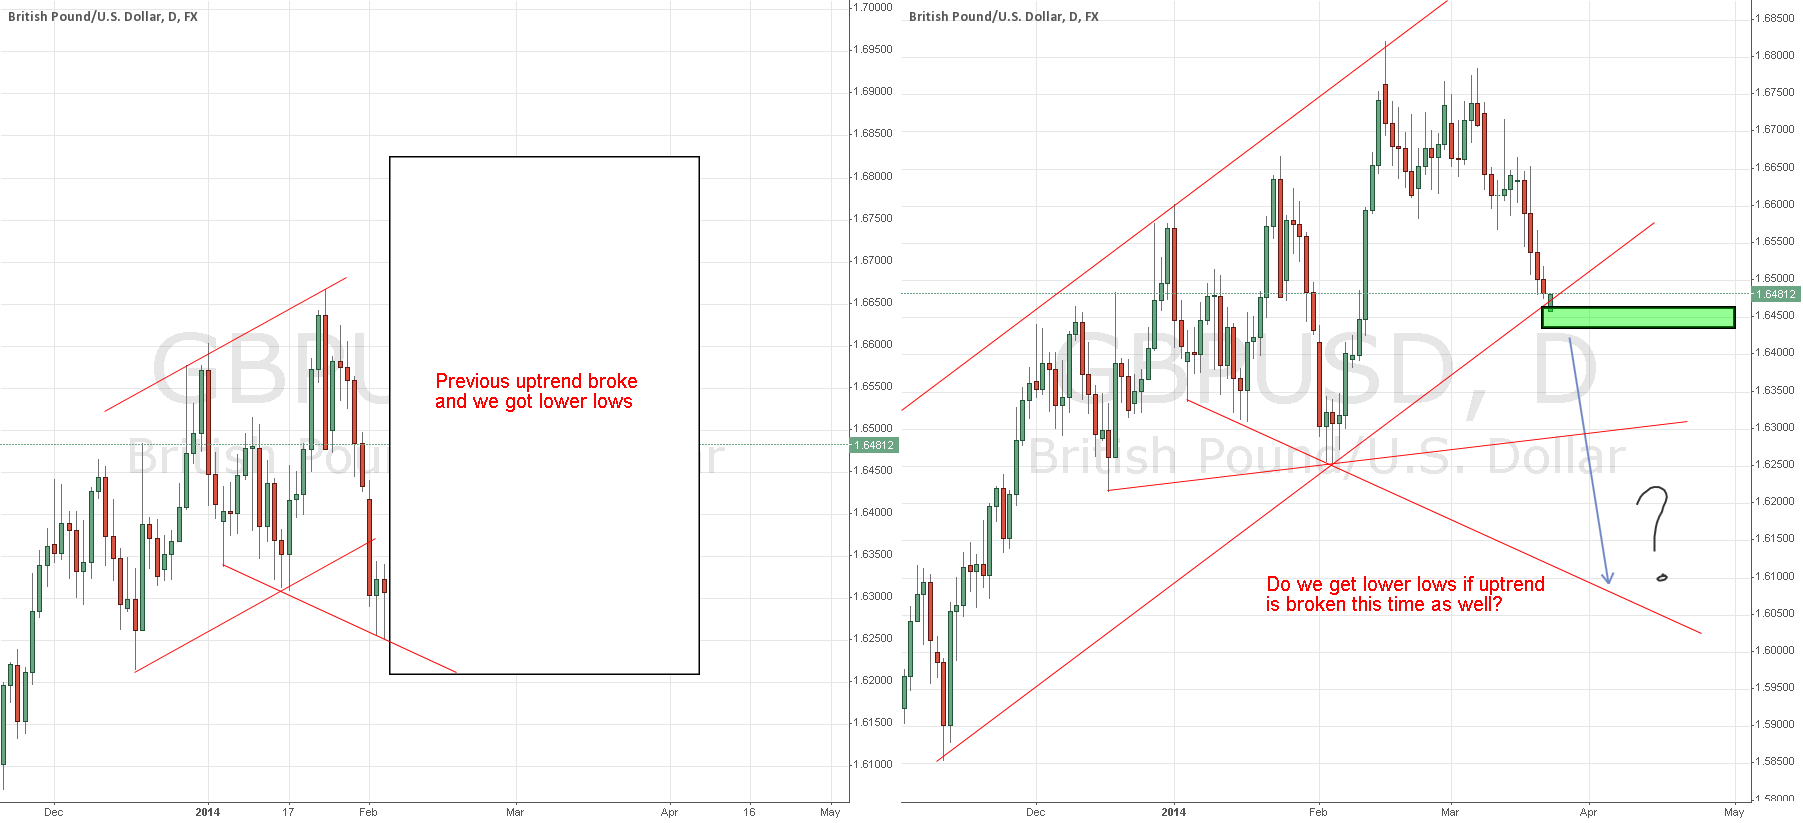 Why 1.6250 might not hold on GBPUSD